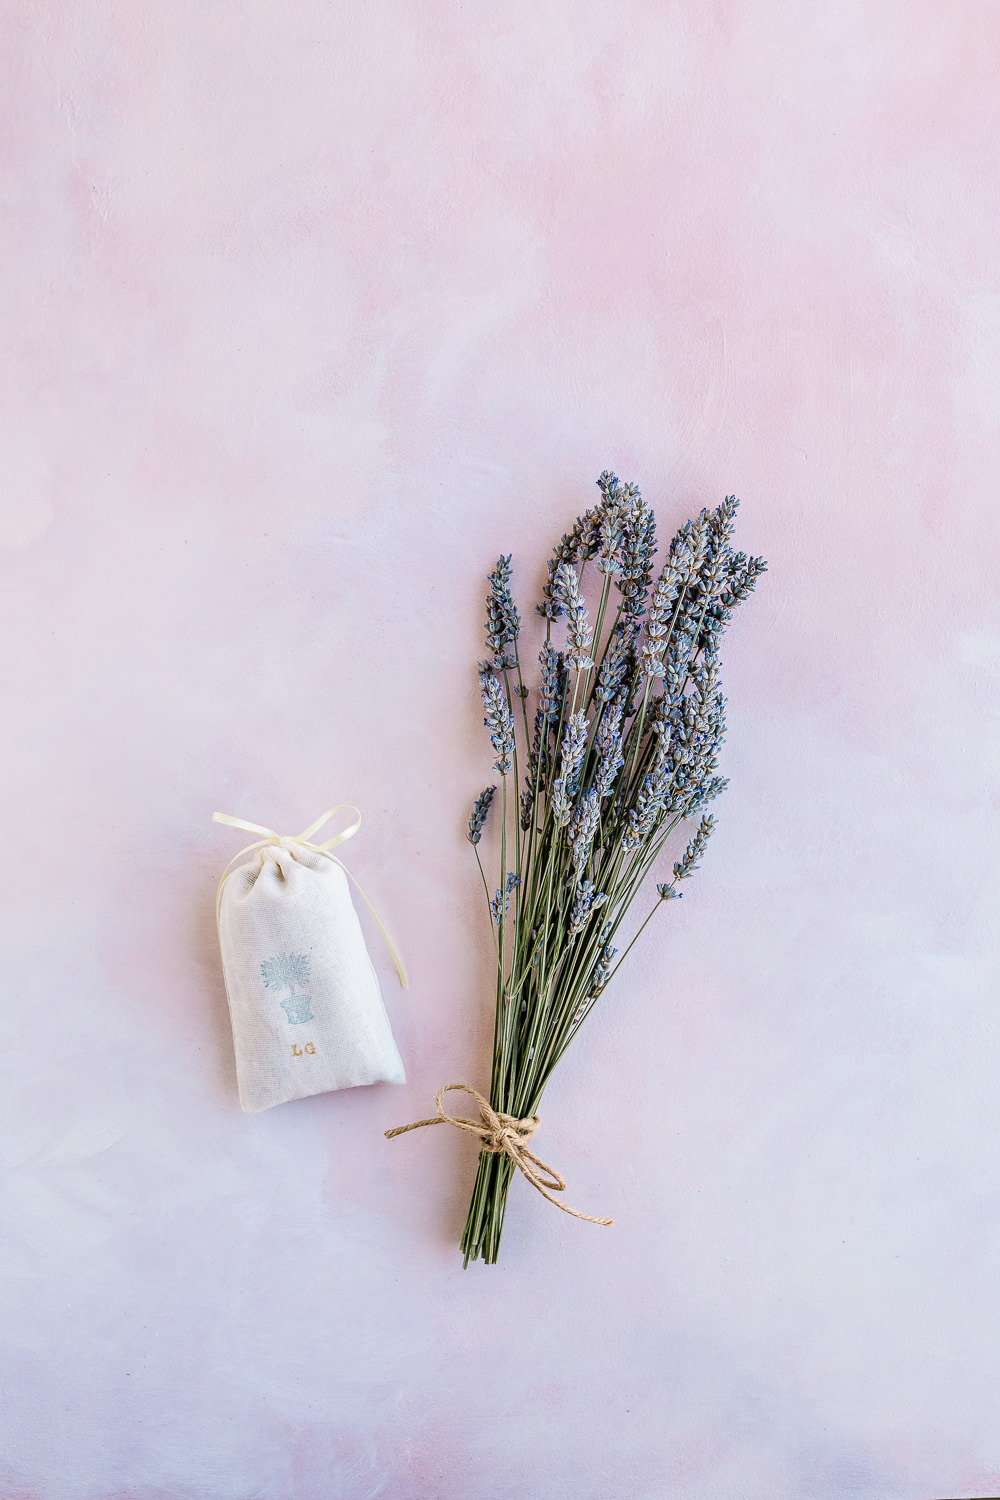 Bundles of lavender and sachet - How to Harvest and Dry Lavender